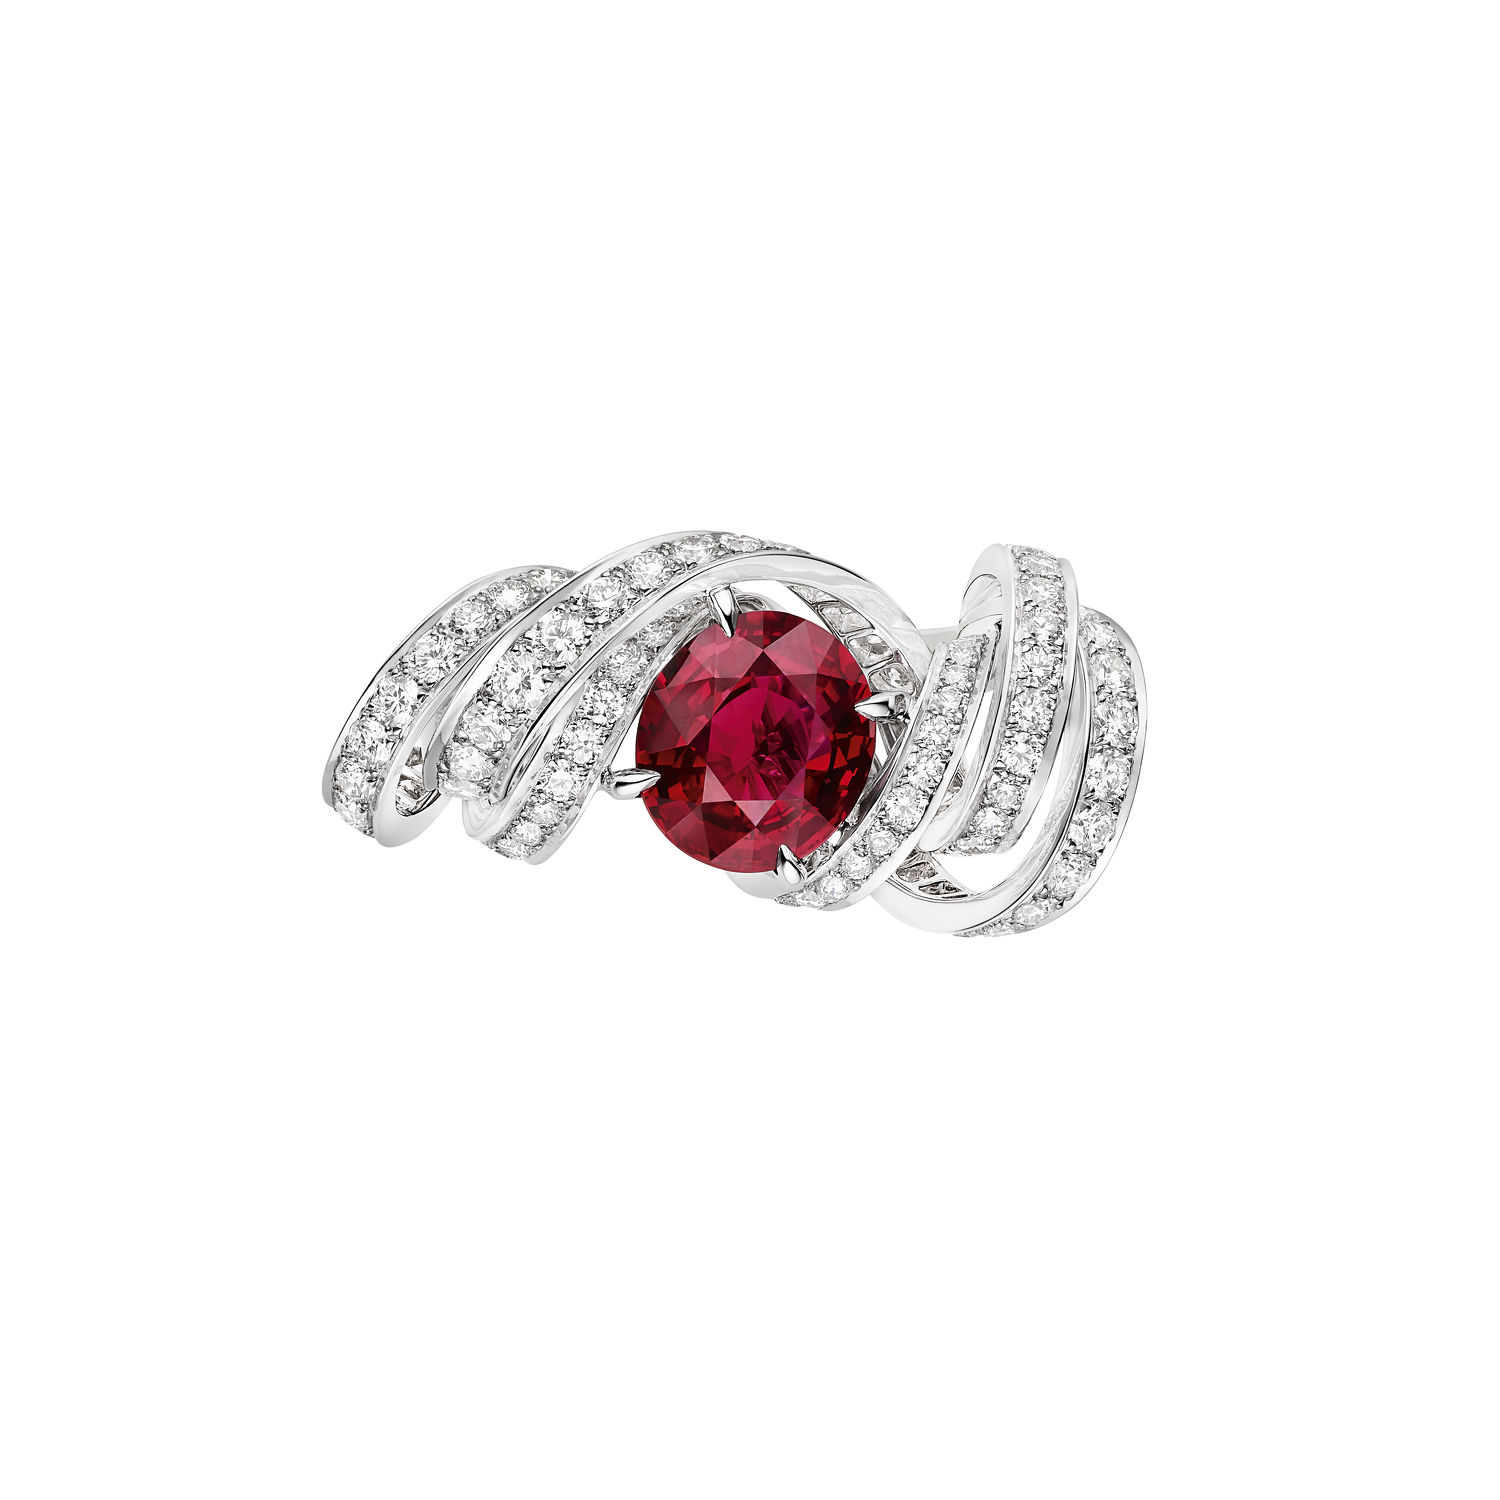 Torsade de Chaumet ring in white gold set with an oval cut Vivid Red Mozambique ruby of 3.05 carats and brilliant cut diamonds - THE EDGE SINGAPORE